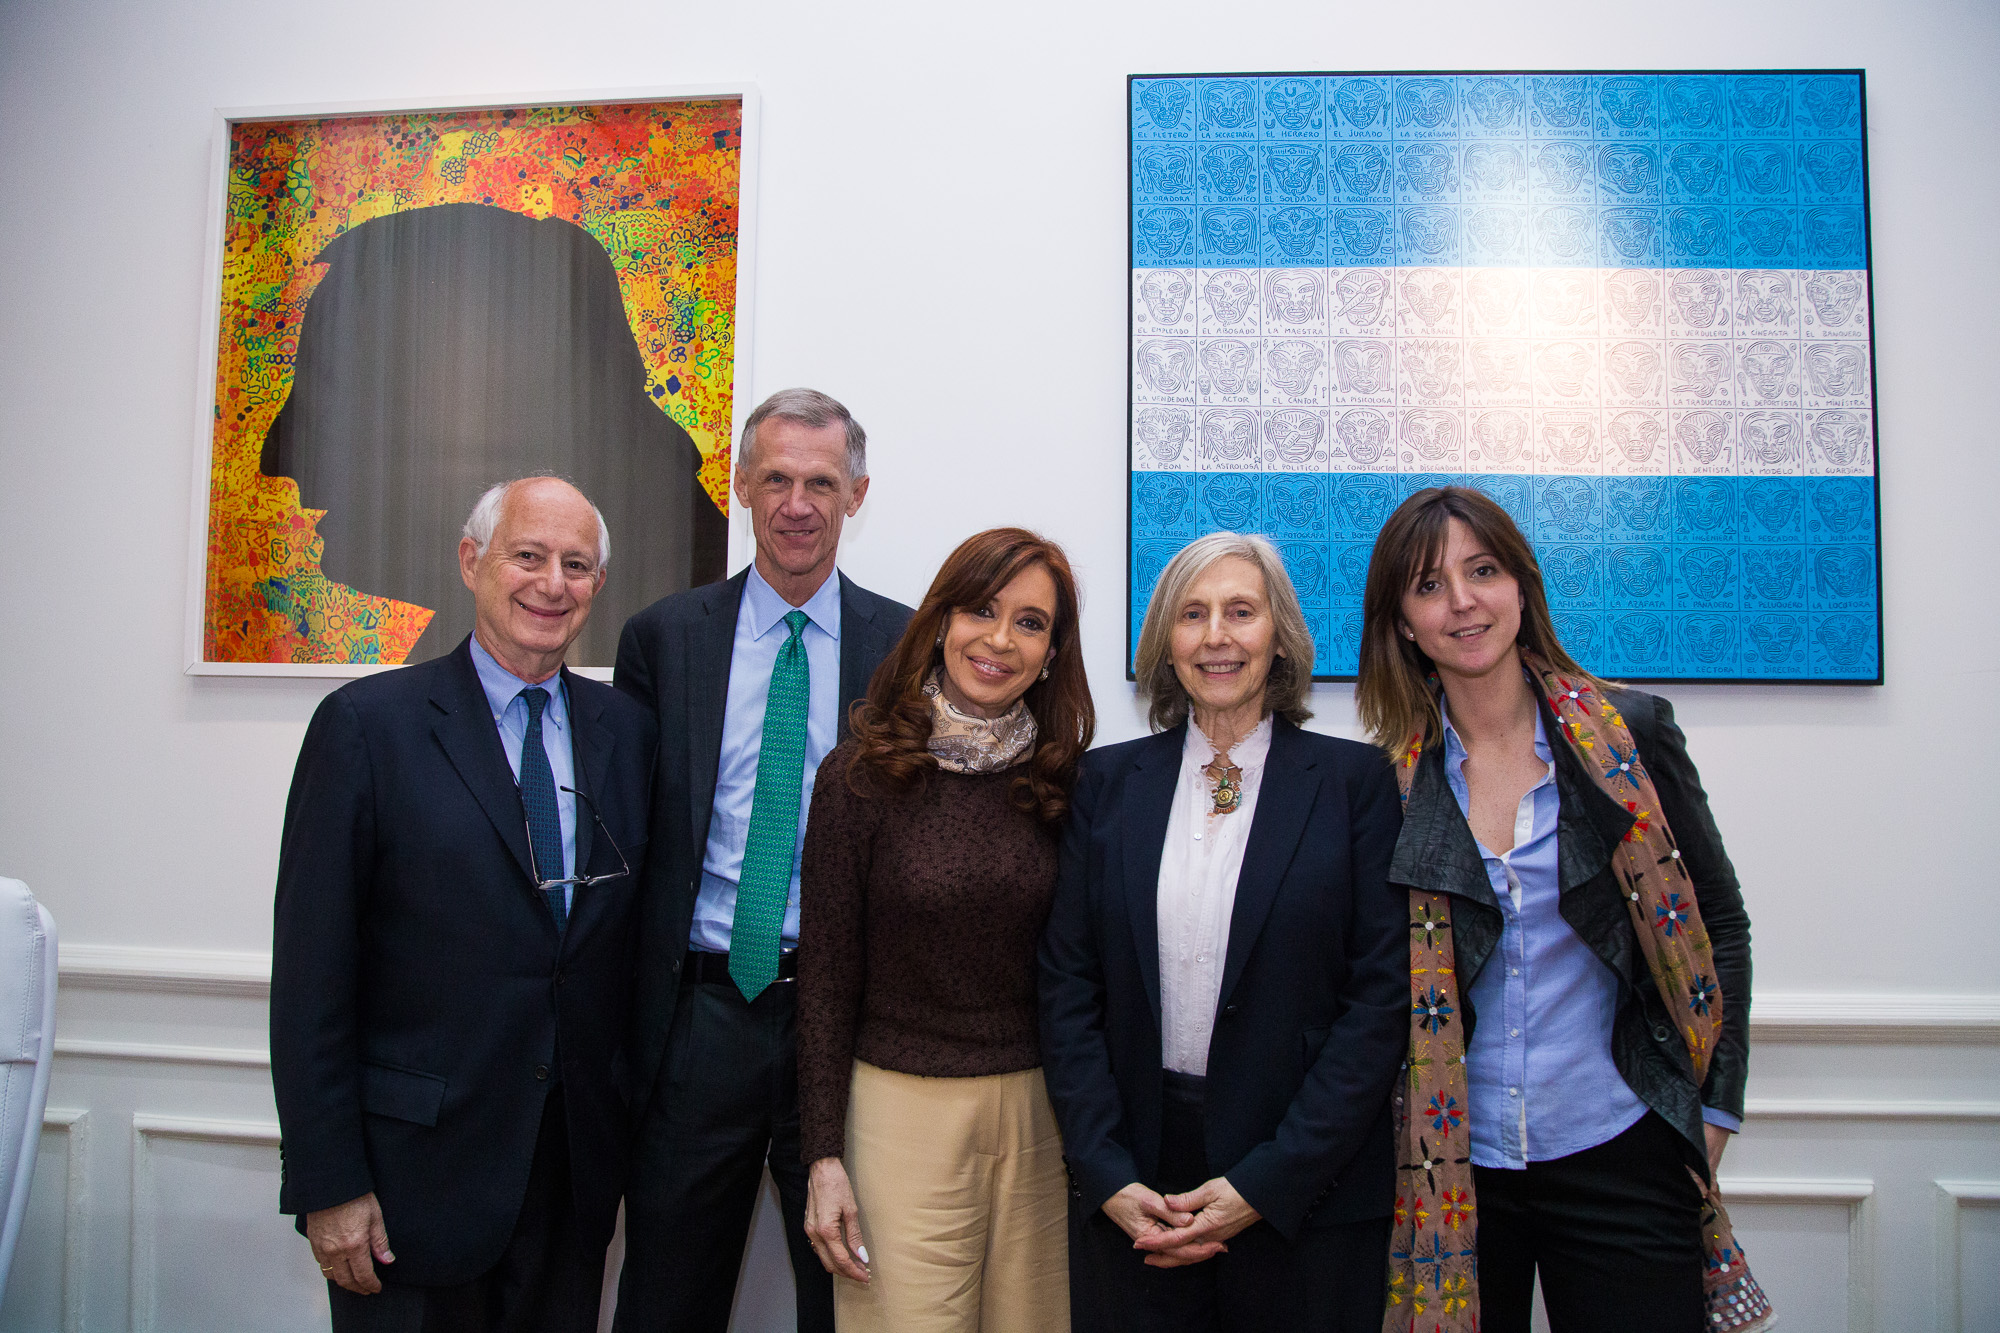 Cristina Kirchner con la New School University